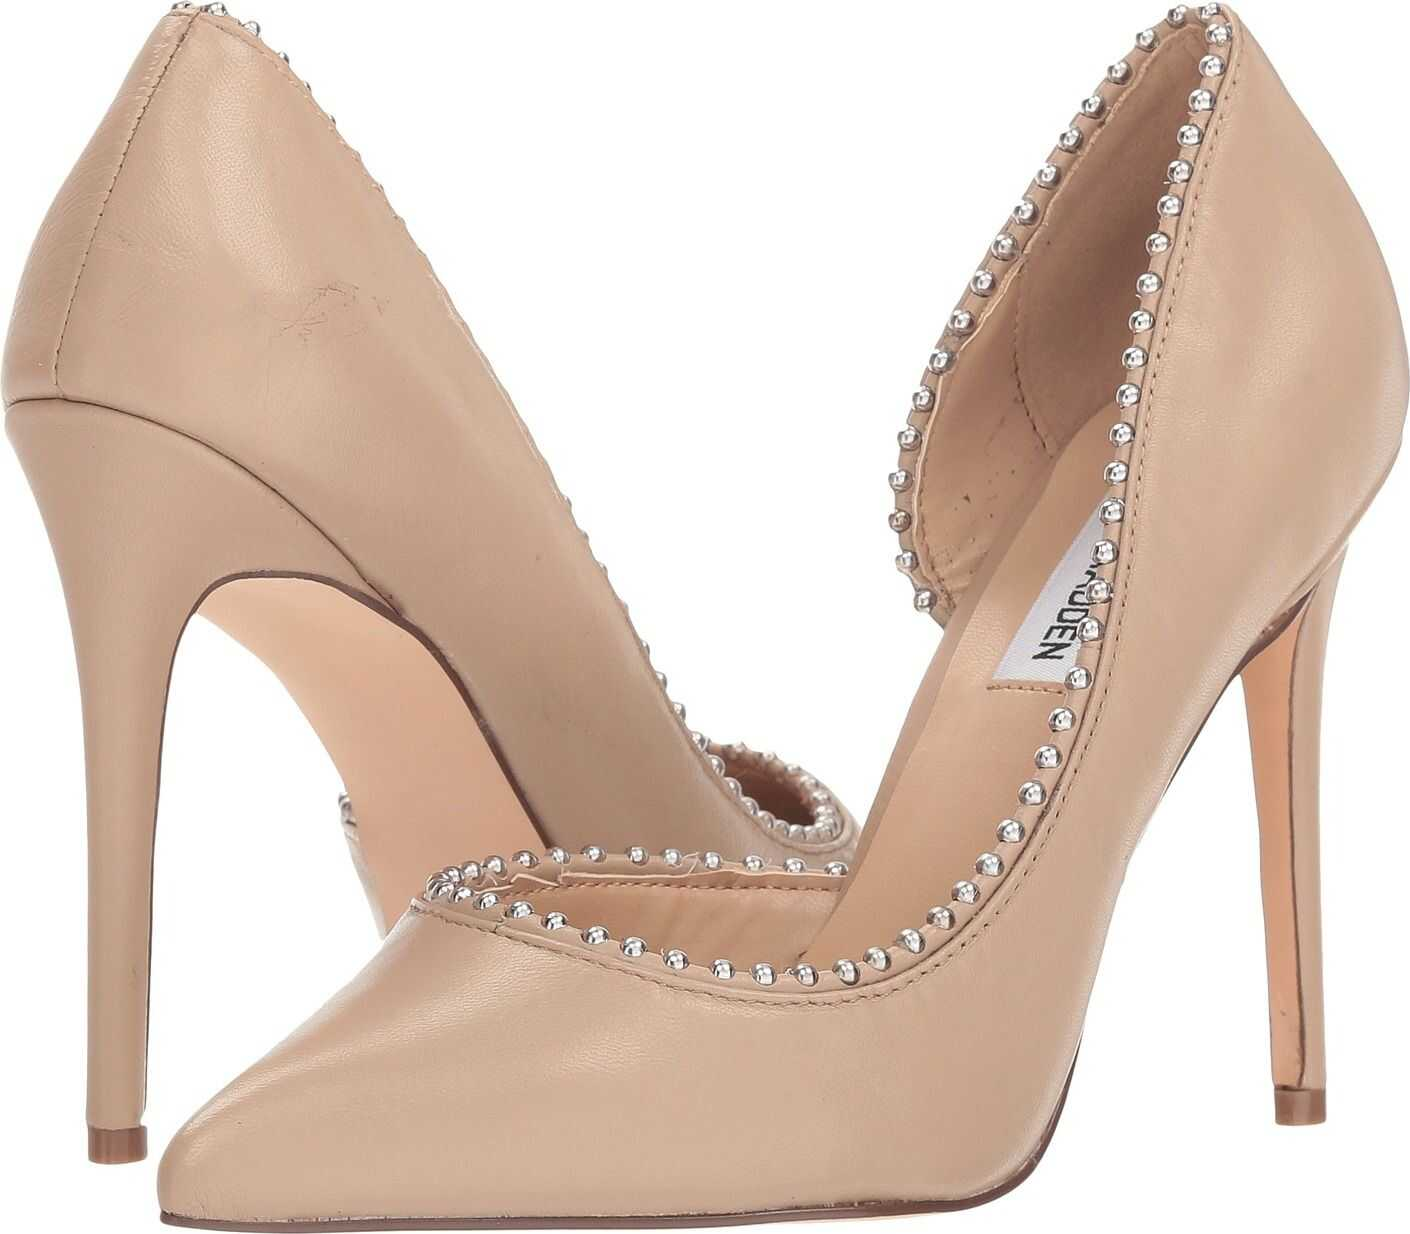 Steve Madden Nicole Blush Leather